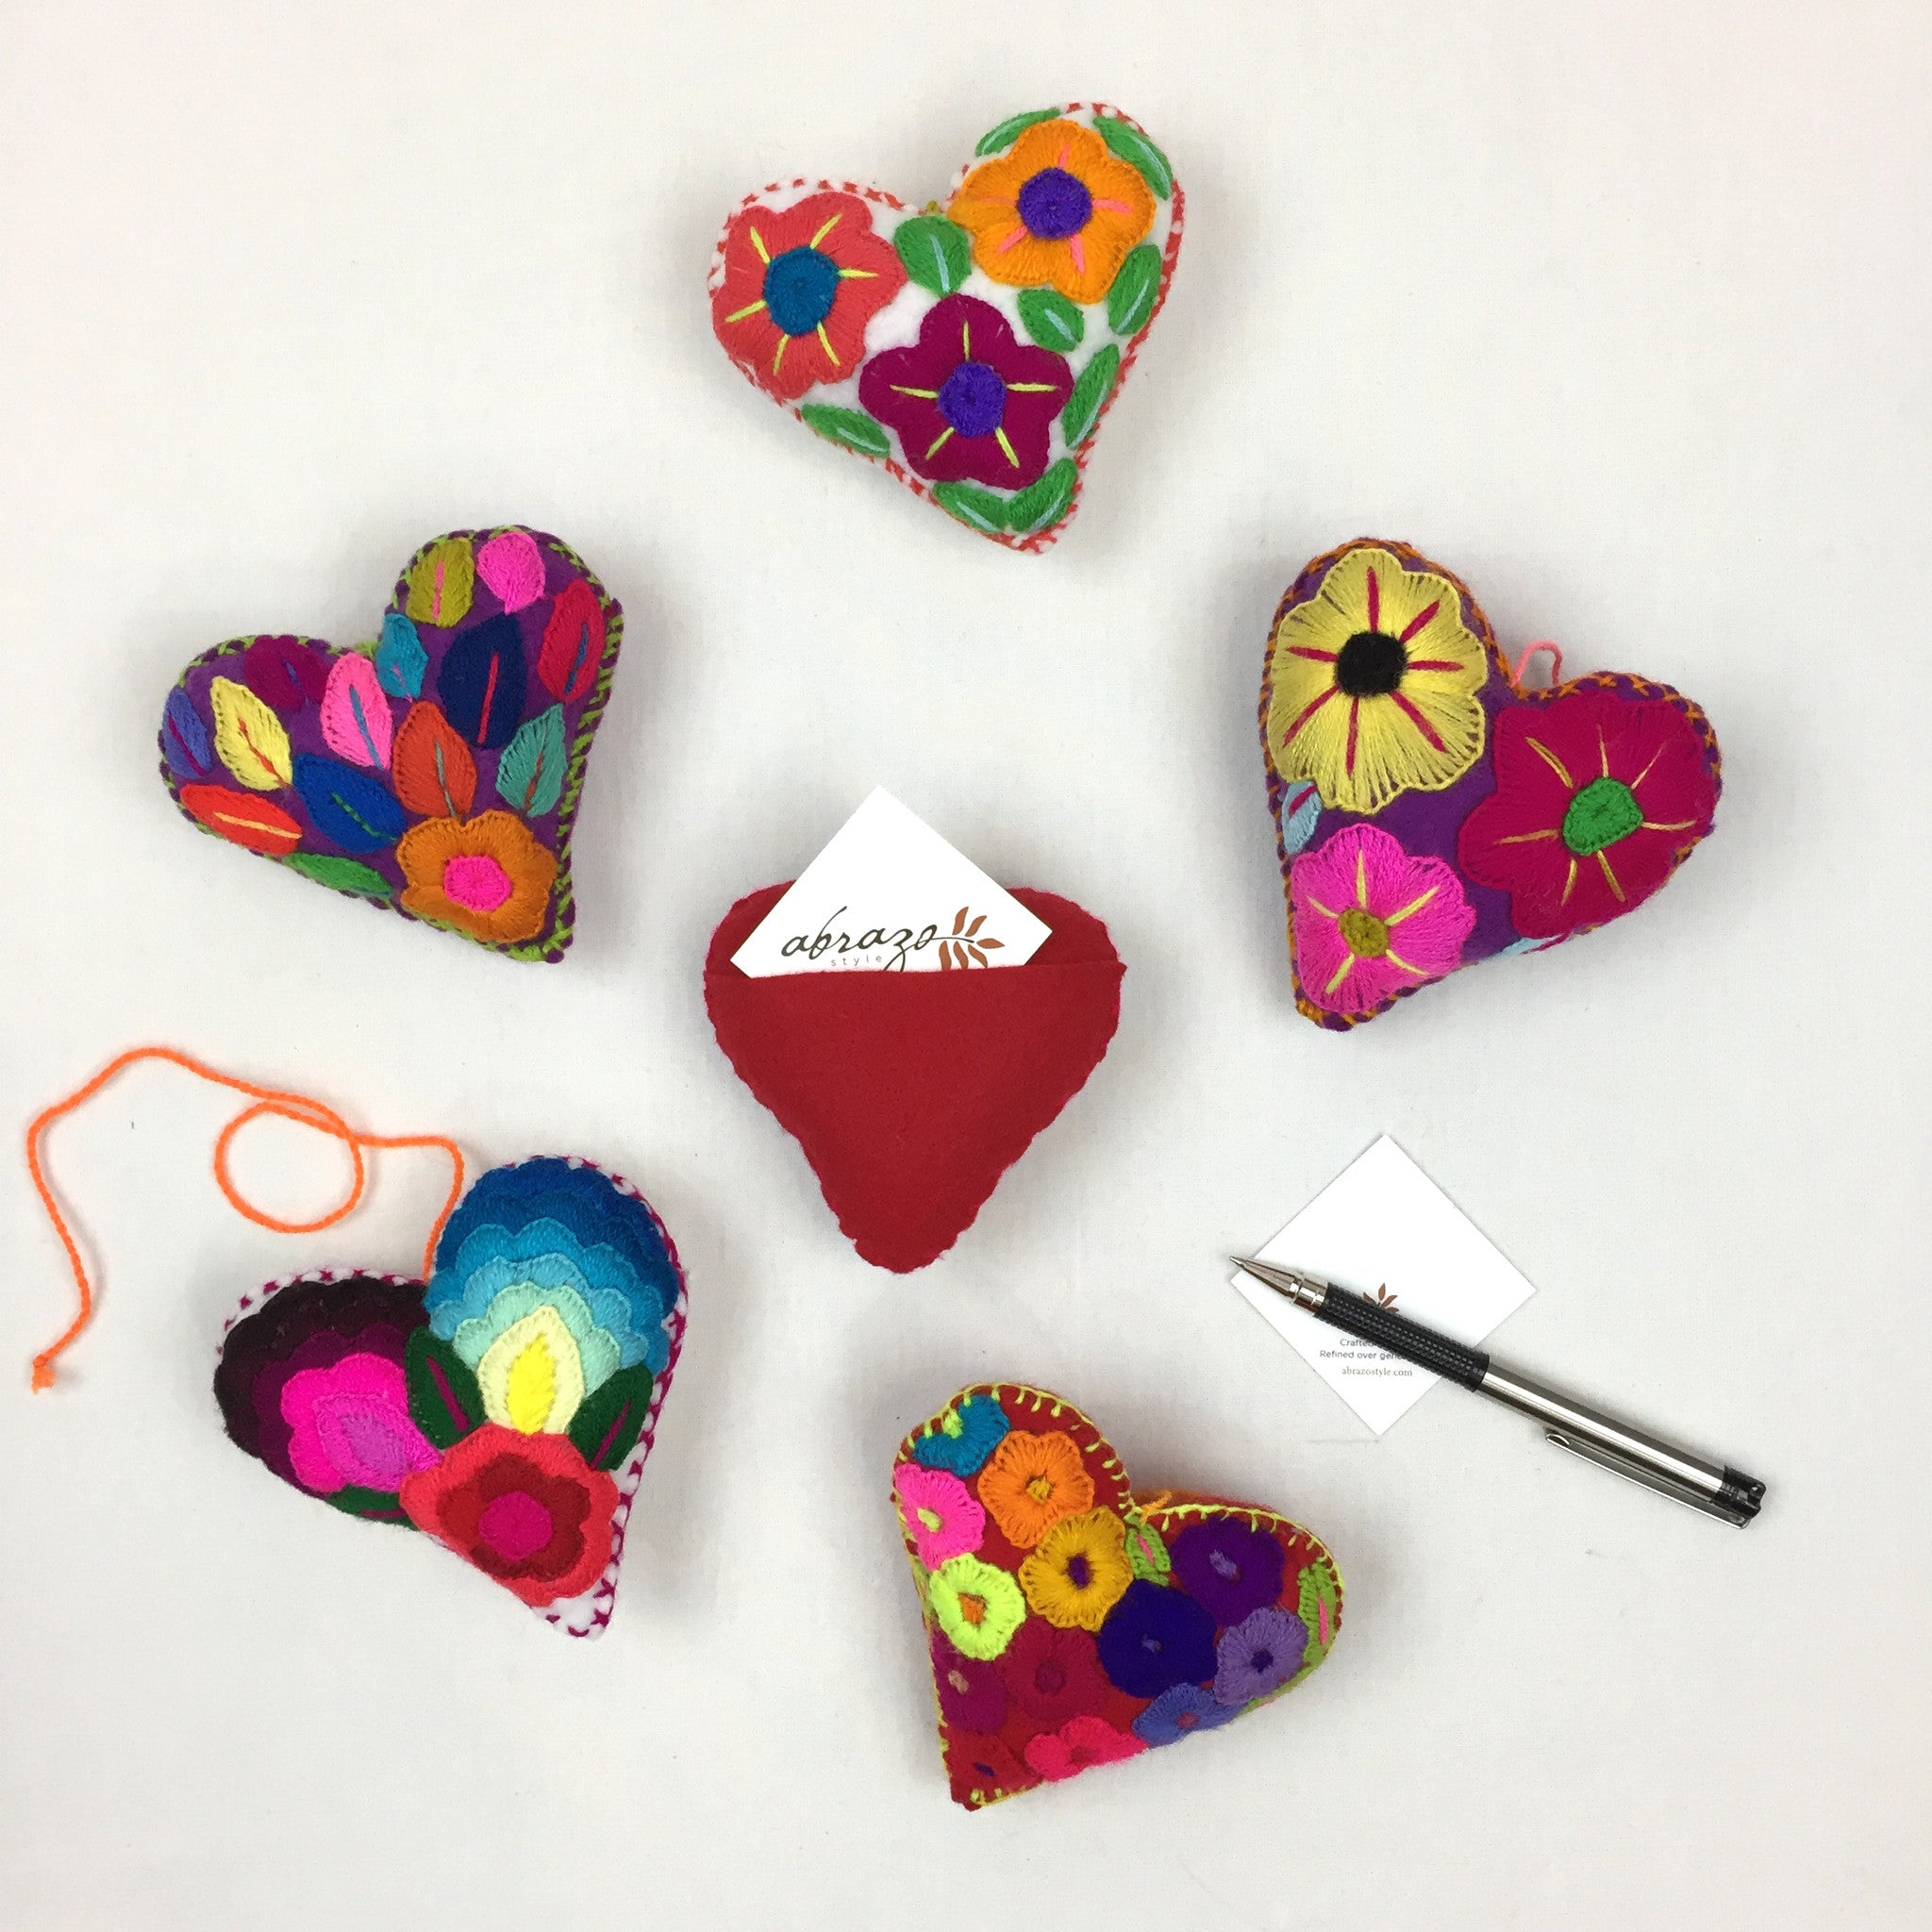 Embroidered Message Hearts (6pk)